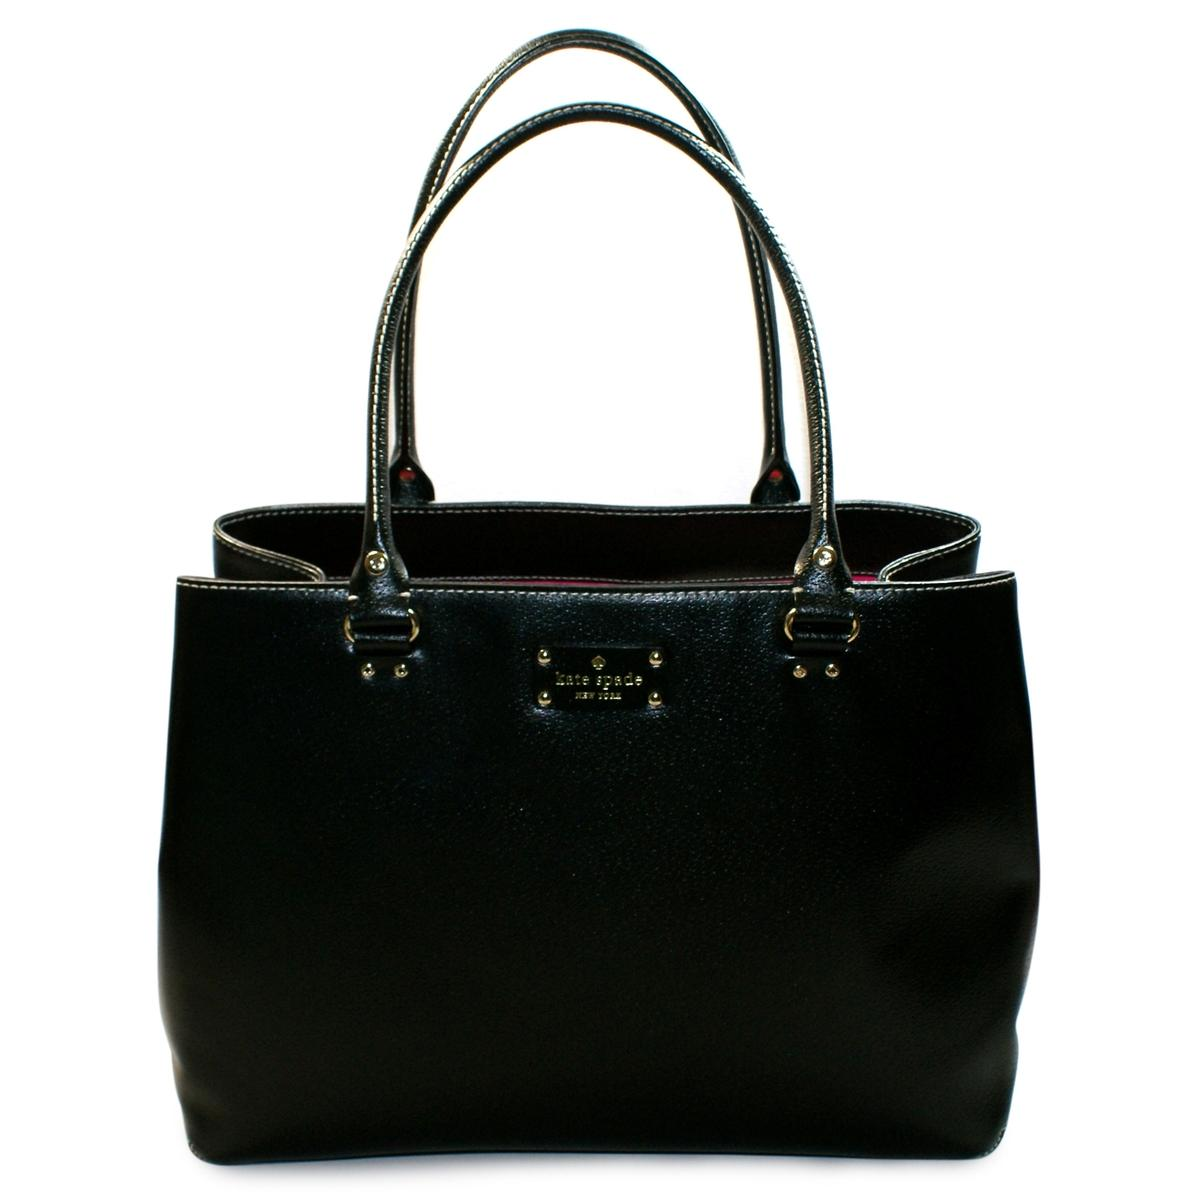 Kate Spade Fallon Wellesley Leather Large Tote Shoulder Bag Black Wkru1433 Kate Spade Wkru1433